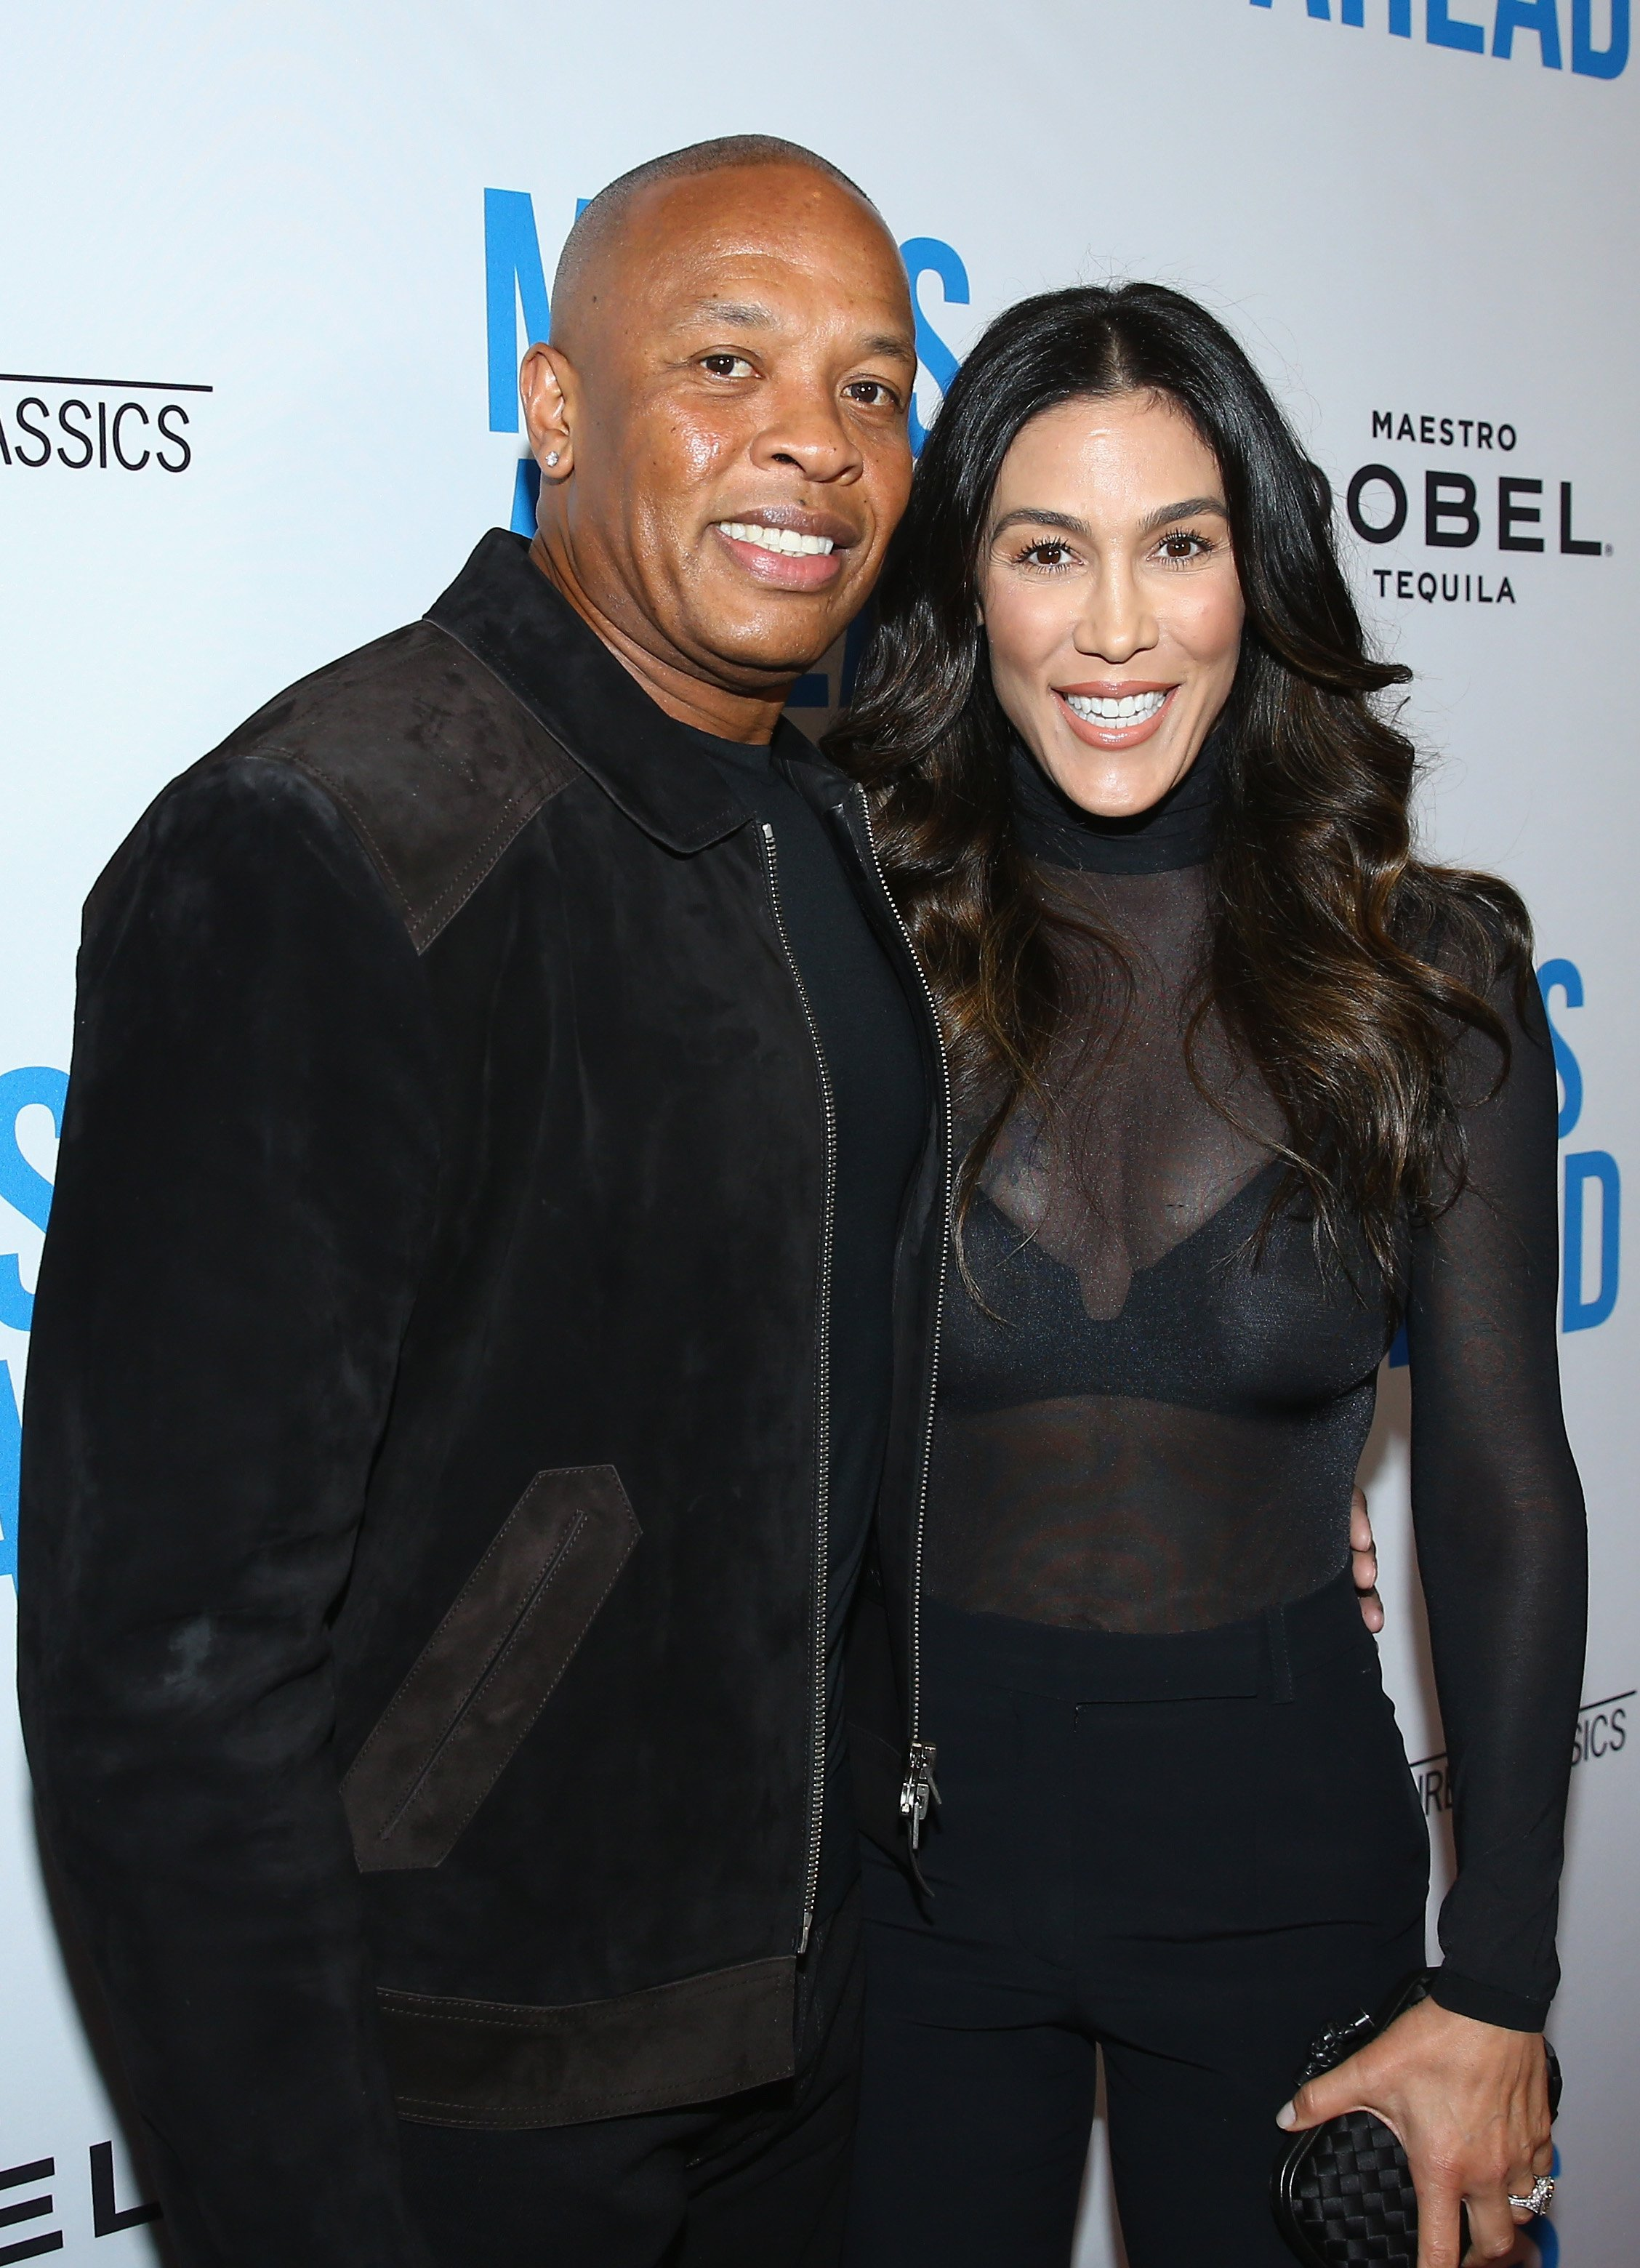 """Dr. Dre and Nicole Young attend the premiere of Sony Pictures Classics' """"Miles Ahead"""" at Writers Guild Theater on March 29, 2016 in Beverly Hills, California. (Photo by Mark Davis/Getty Images)"""